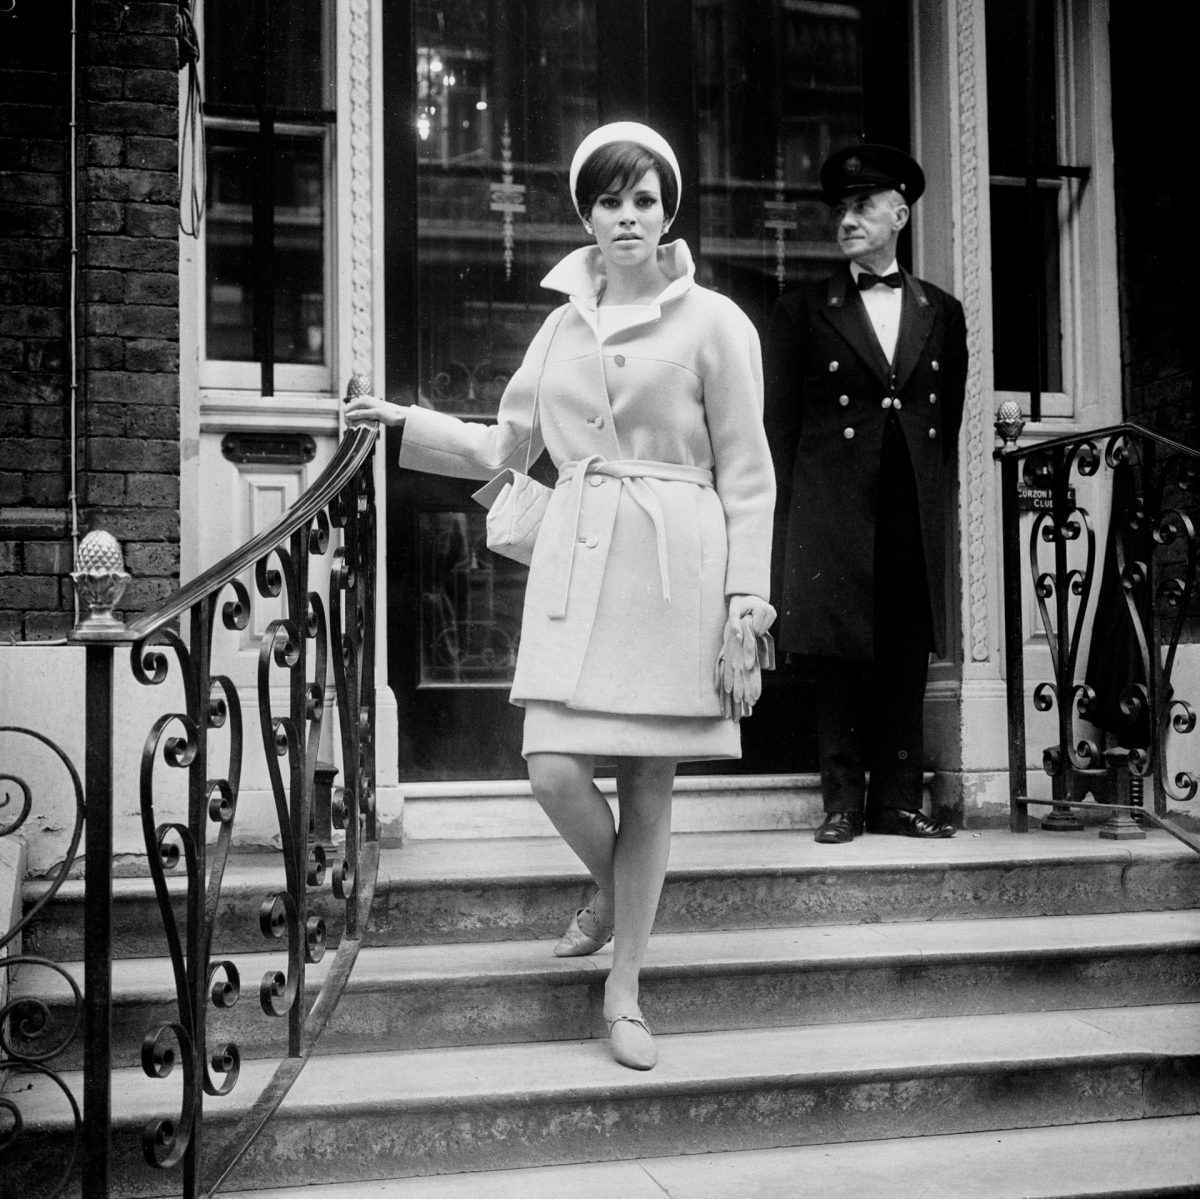 Raquel Welch goes for a walk on Curzon Street, Mayfair, 4 March 1966